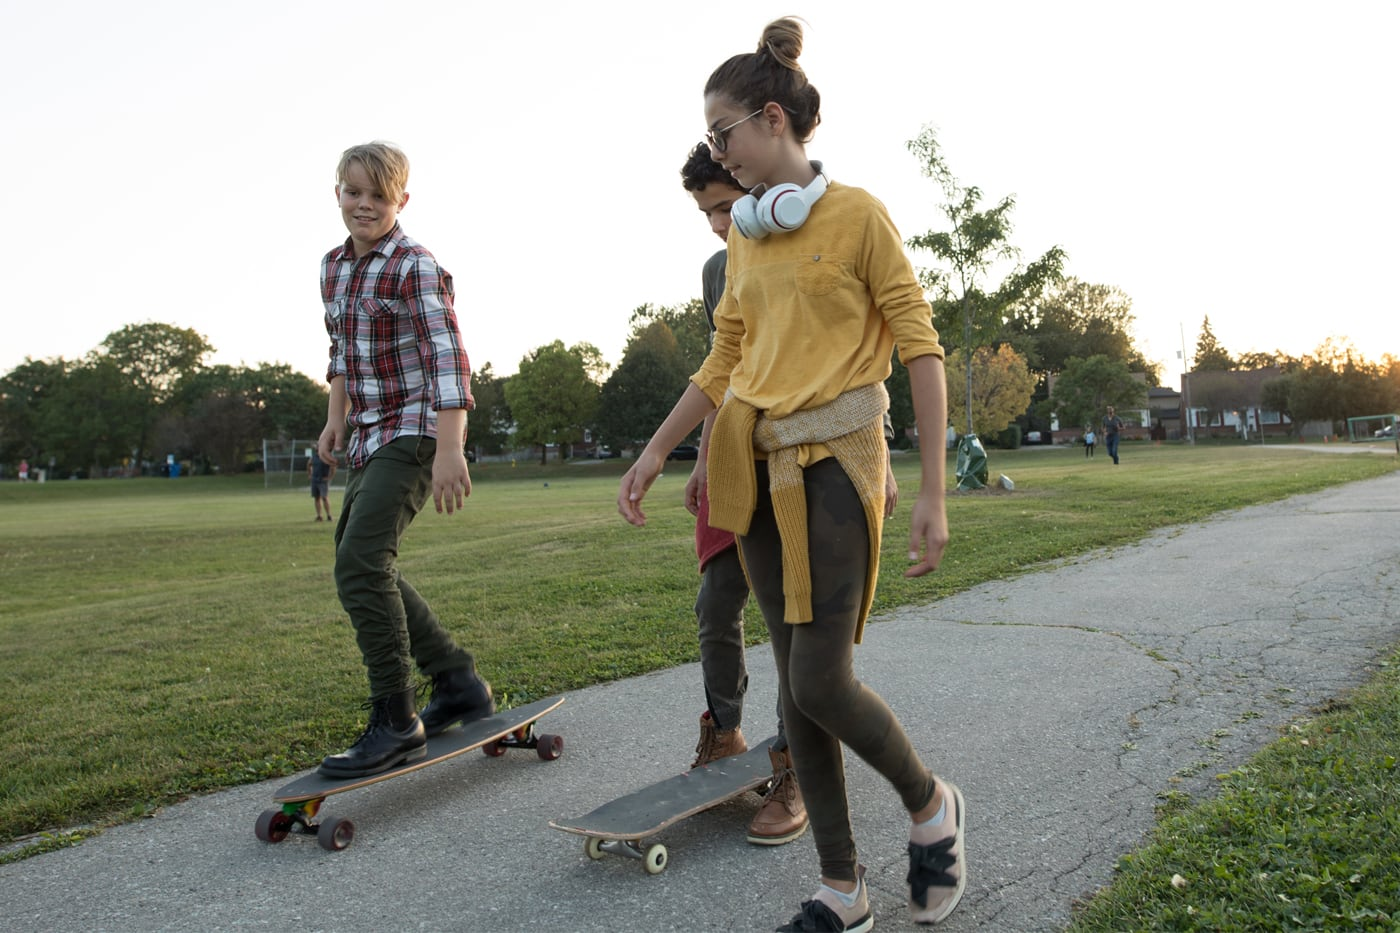 3 teenagers skateboarding in a park at dusk